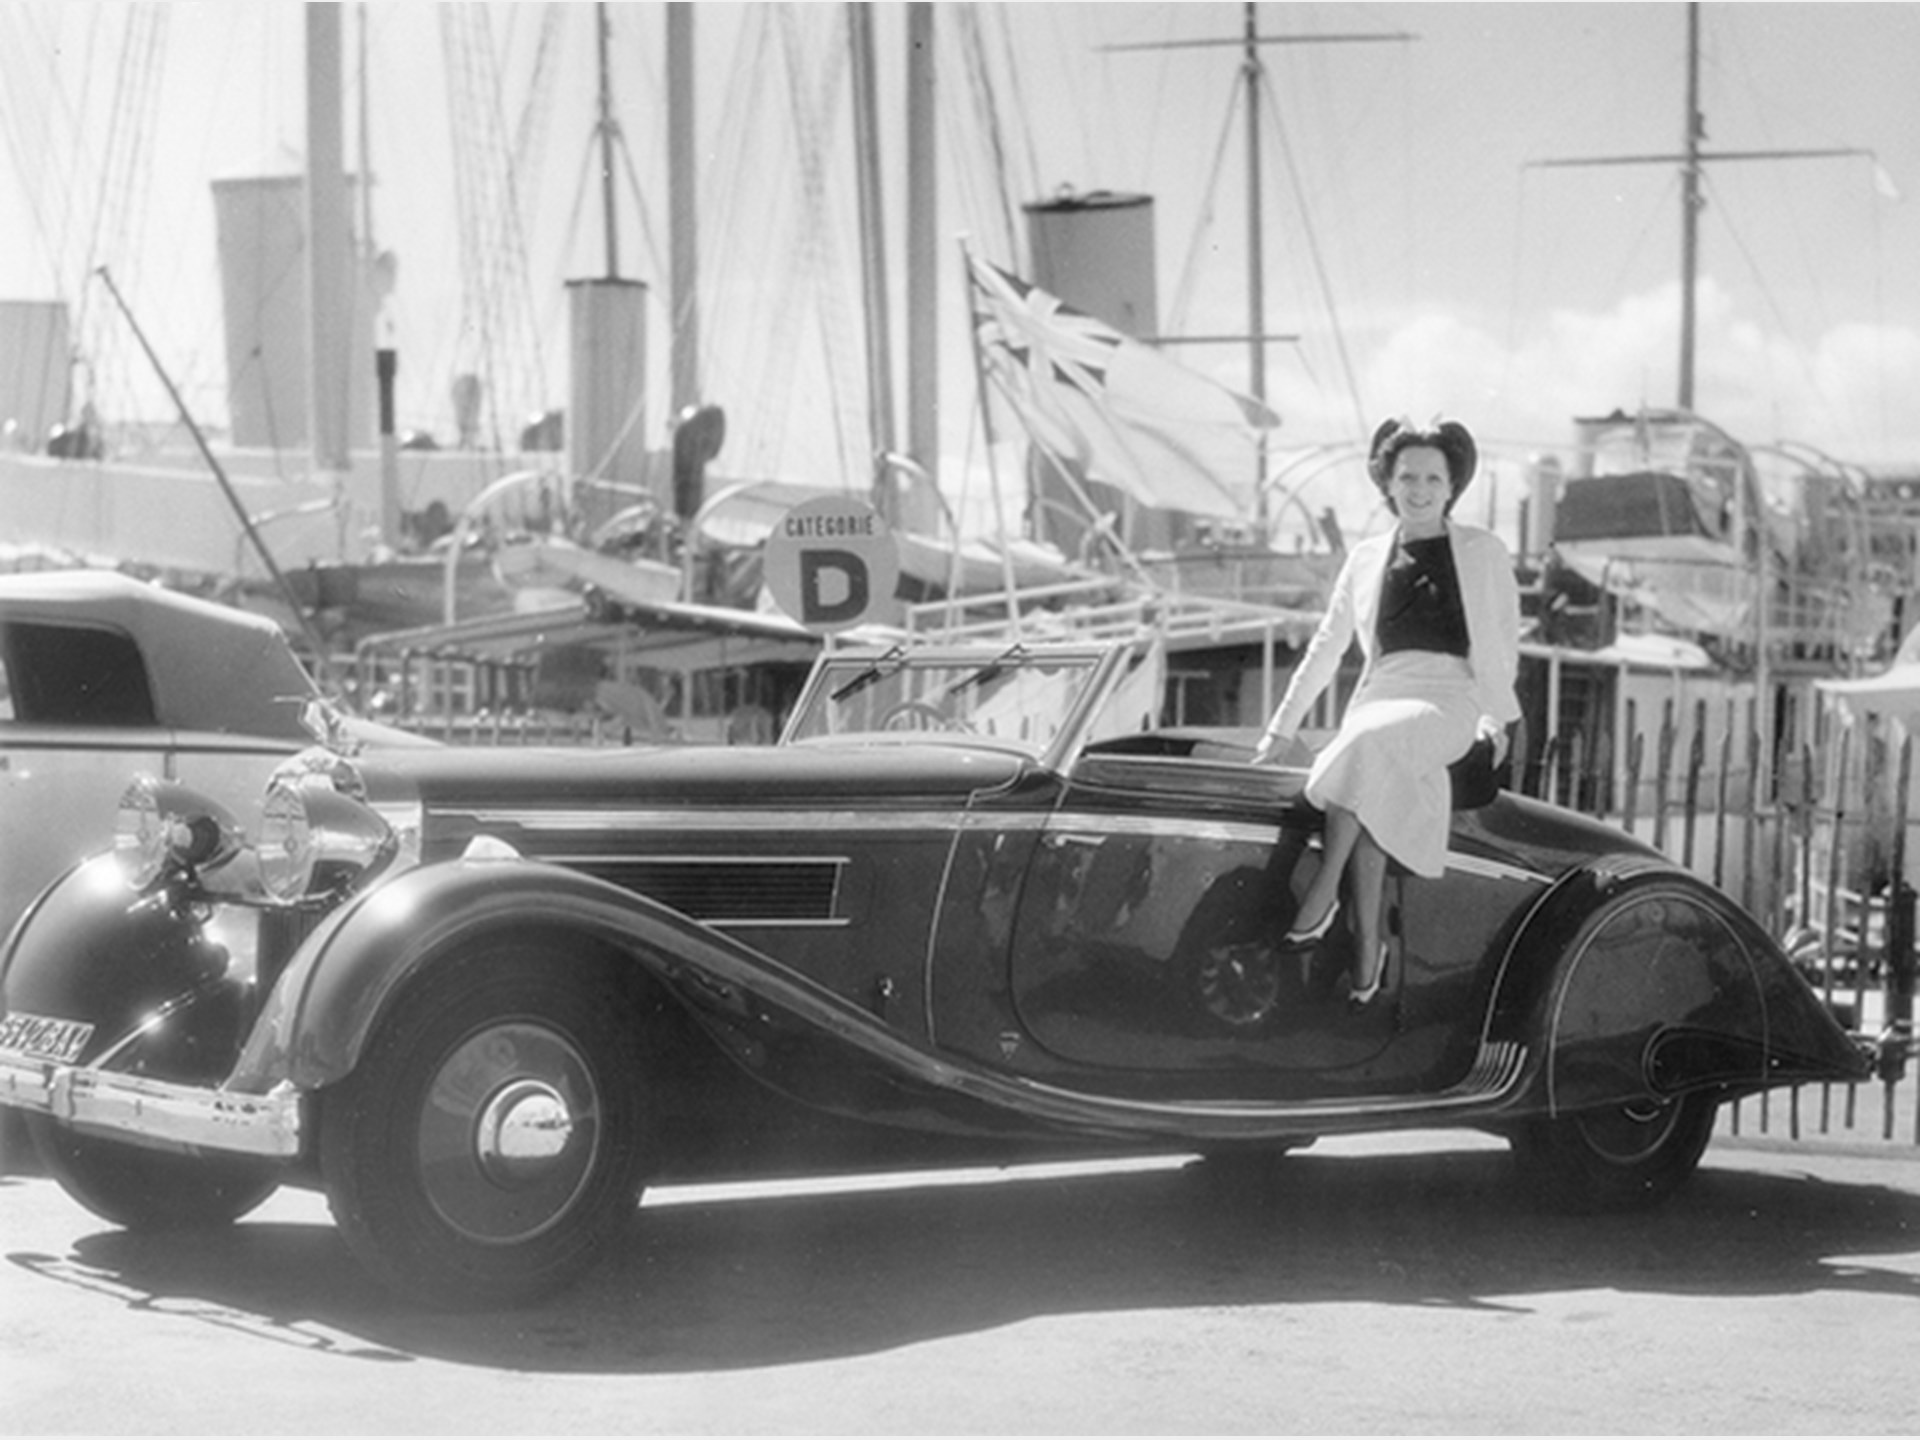 Chassis number 16035 showing off its exquisite Brandone lines at the concours in Cannes, March 1937.